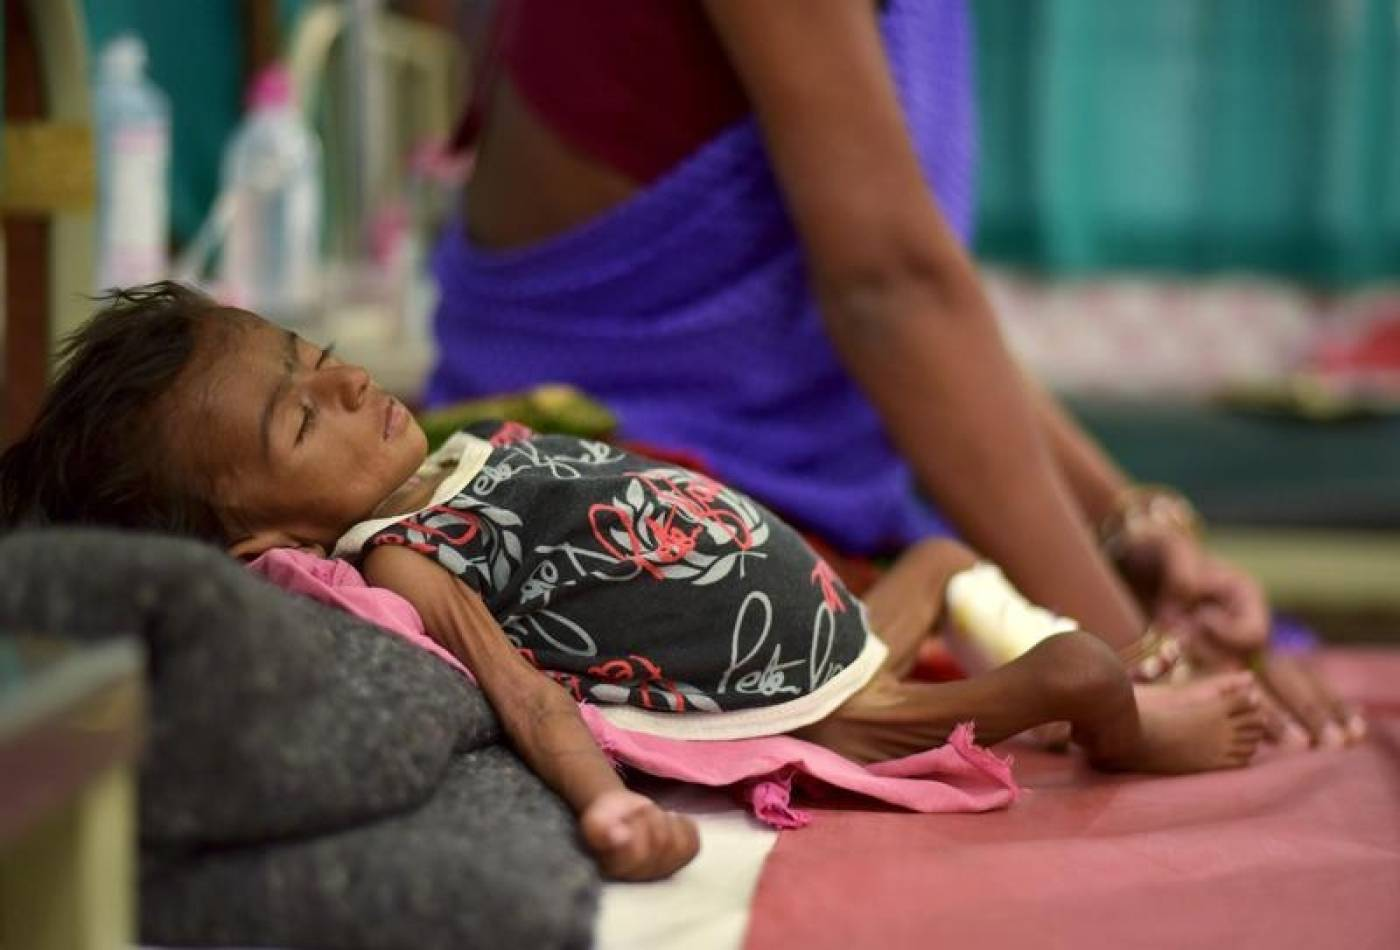 'Where India Goes' Gives a First-Hand Analysis of India's Poor Early-Life Health and Stunting